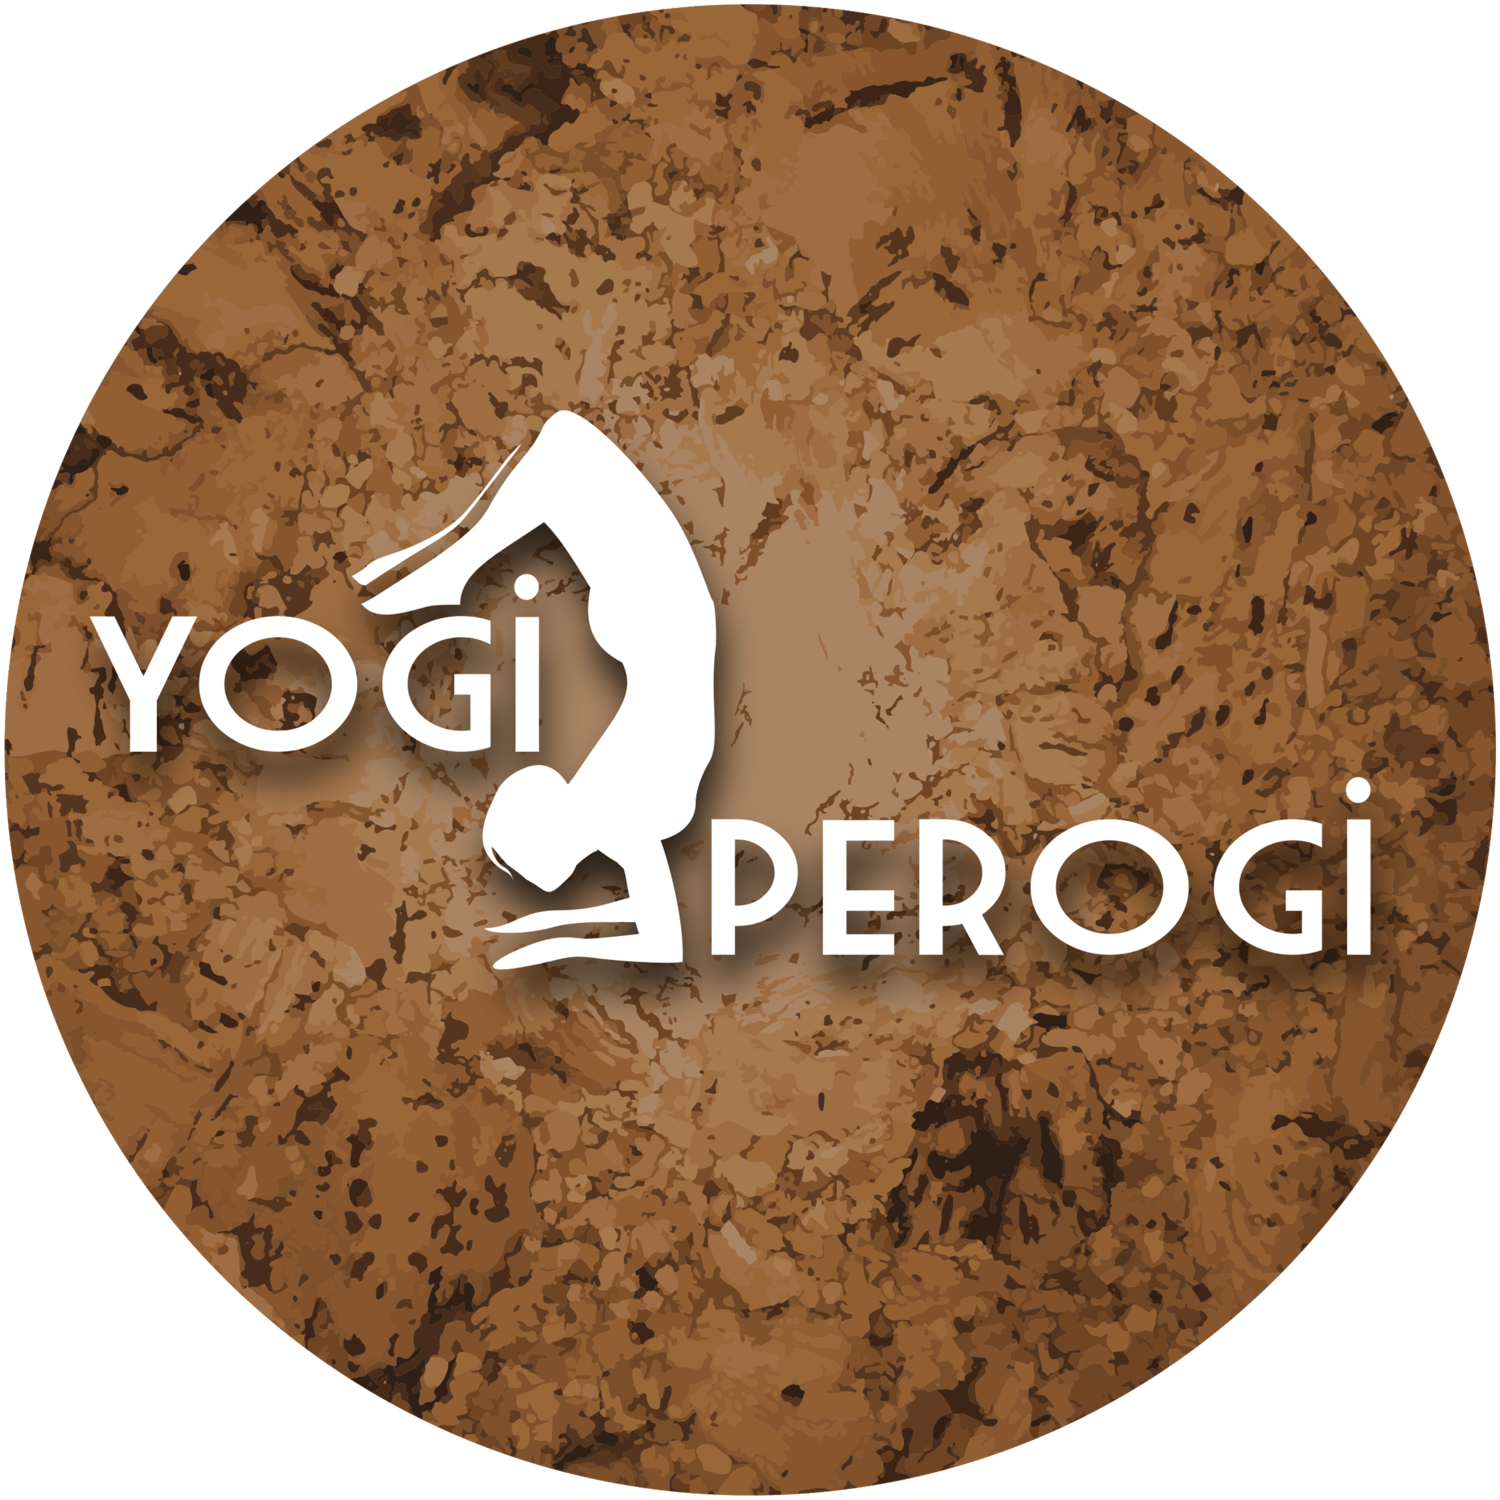 The Yogi Perogi- Yoga Studio